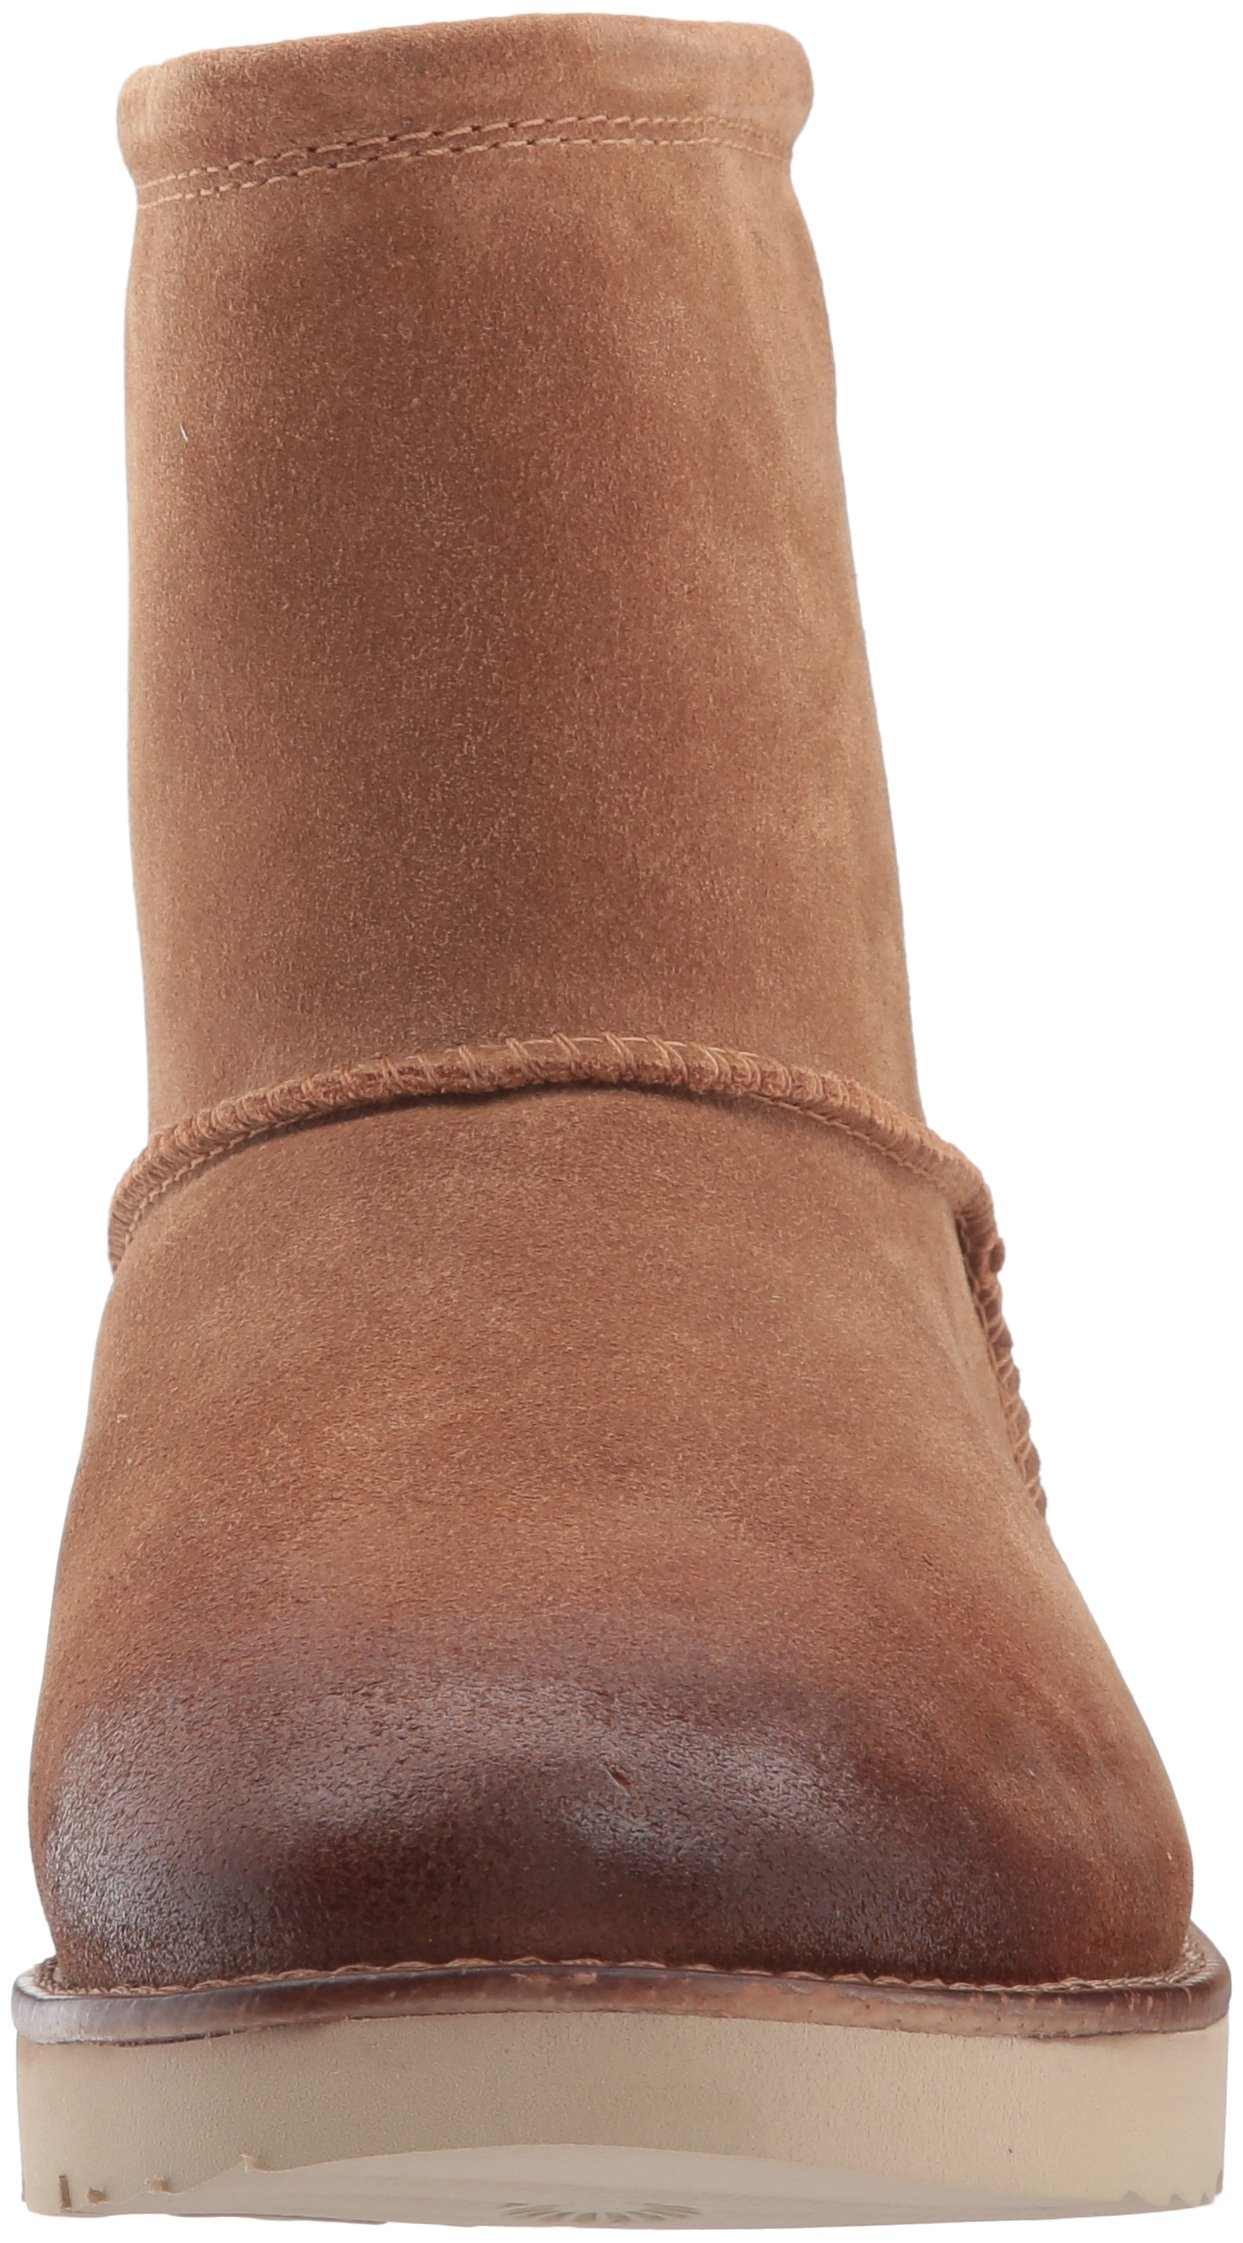 UGG Men's Classic Toggle Waterproof Winter Boot, Chestnut, 11 M US by UGG (Image #4)